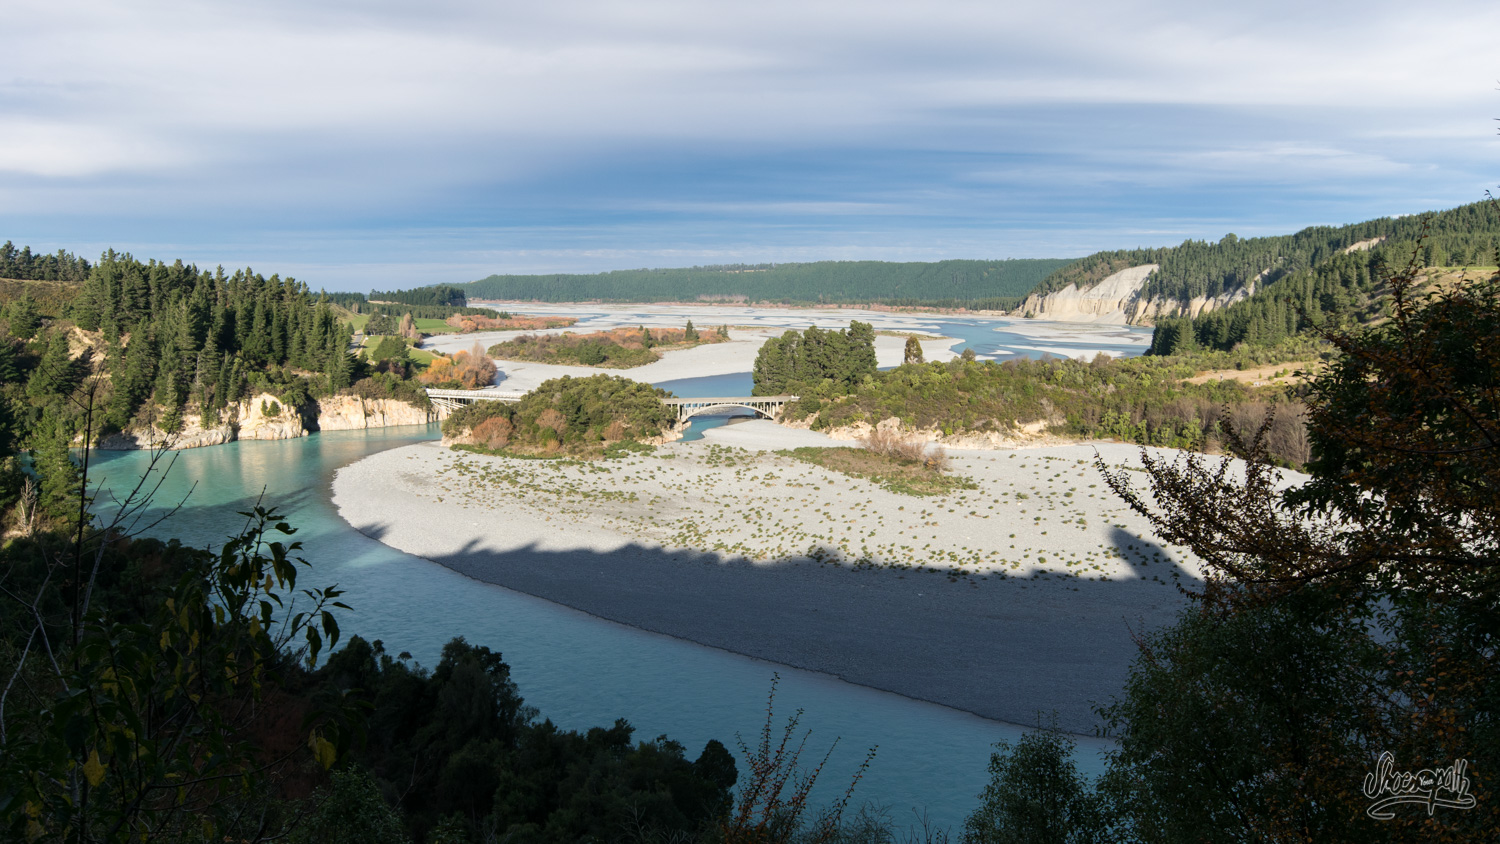 From the heights of the Rakaia Gorge, the view is rolling over the valley